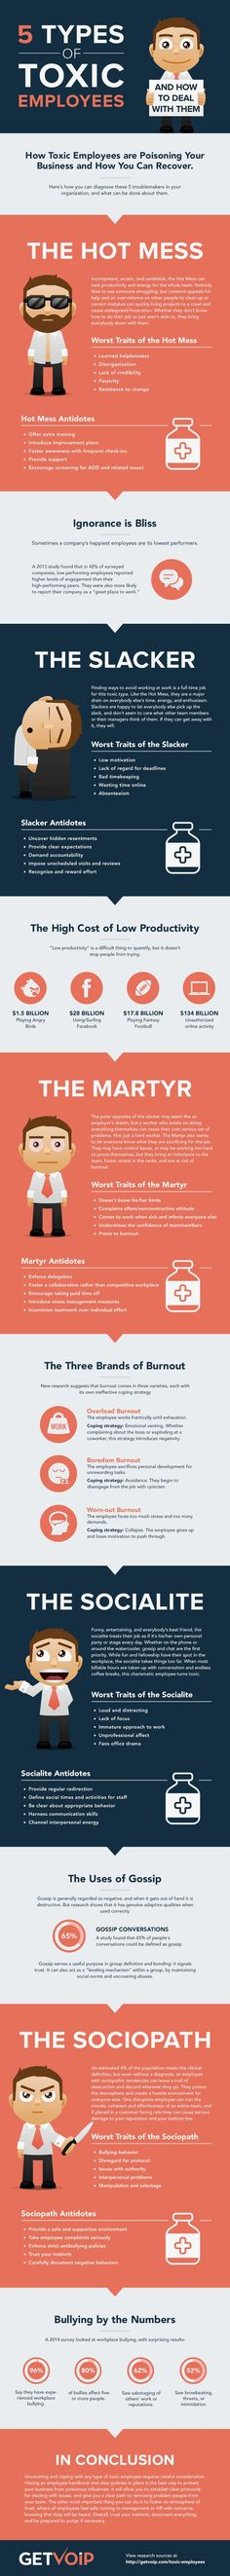 5 Types of Toxic Employees And How You Can Deal With Them